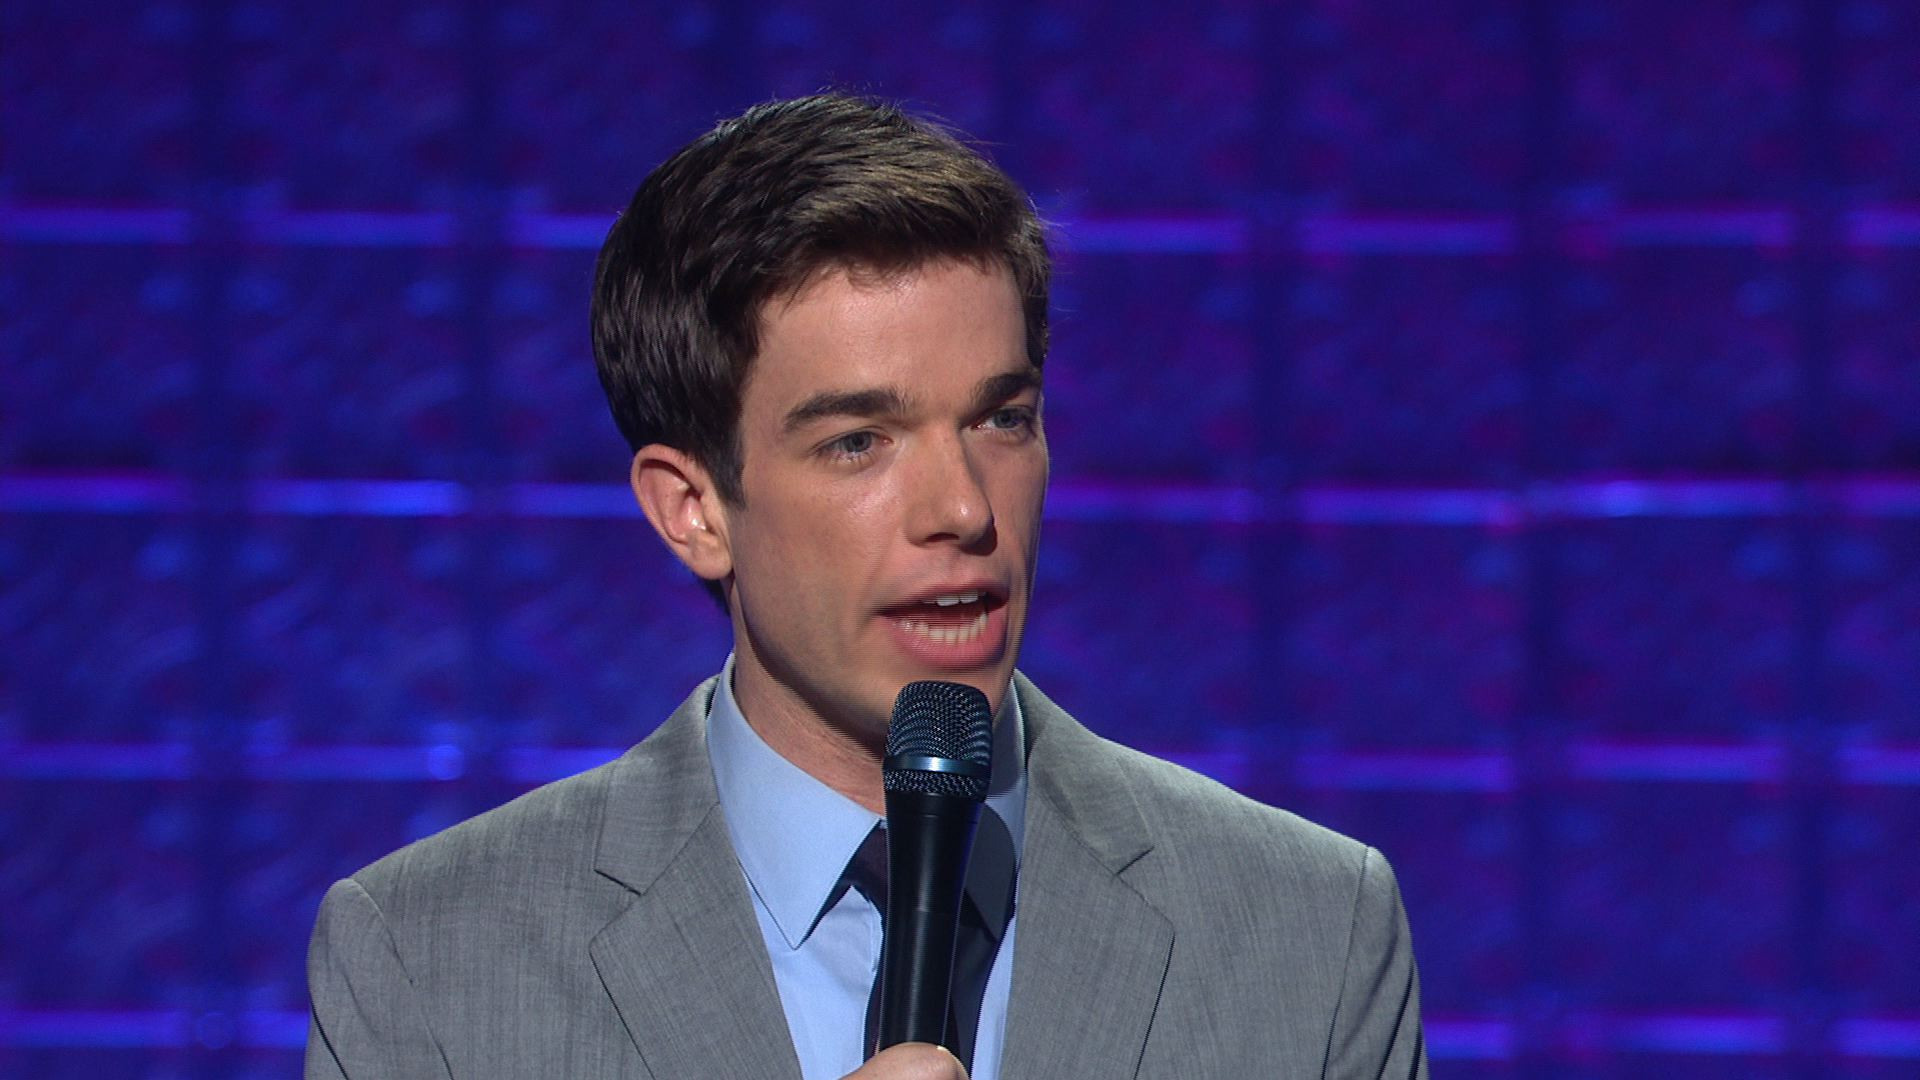 John Mulaney - What You Can Say on TV